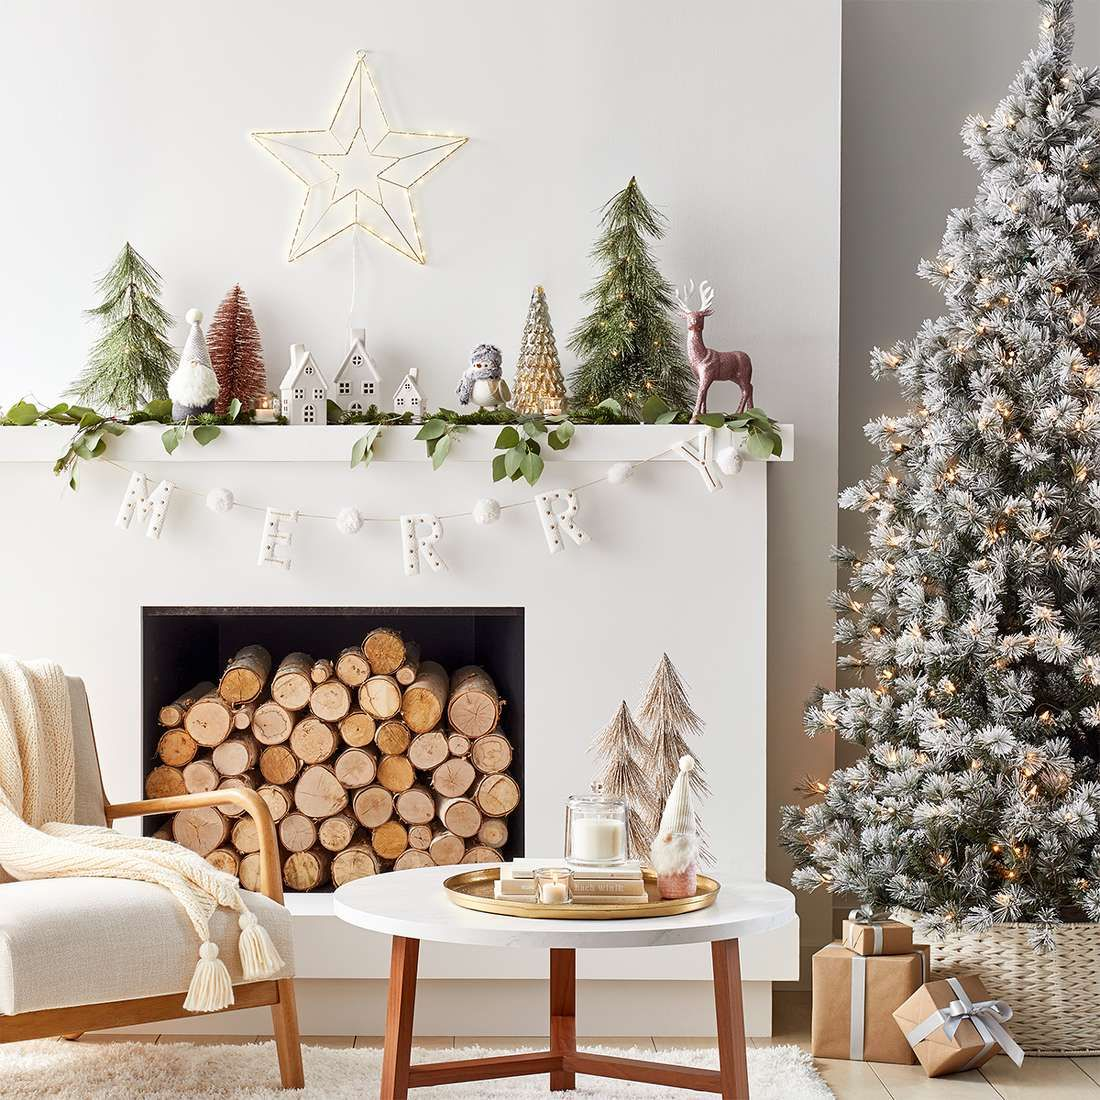 Shop Christmas Decor Collections At Target For Holiday Decor Inspiration Free Shipping Ret Indoor Christmas Decorations Holiday Decor Target Christmas Decor